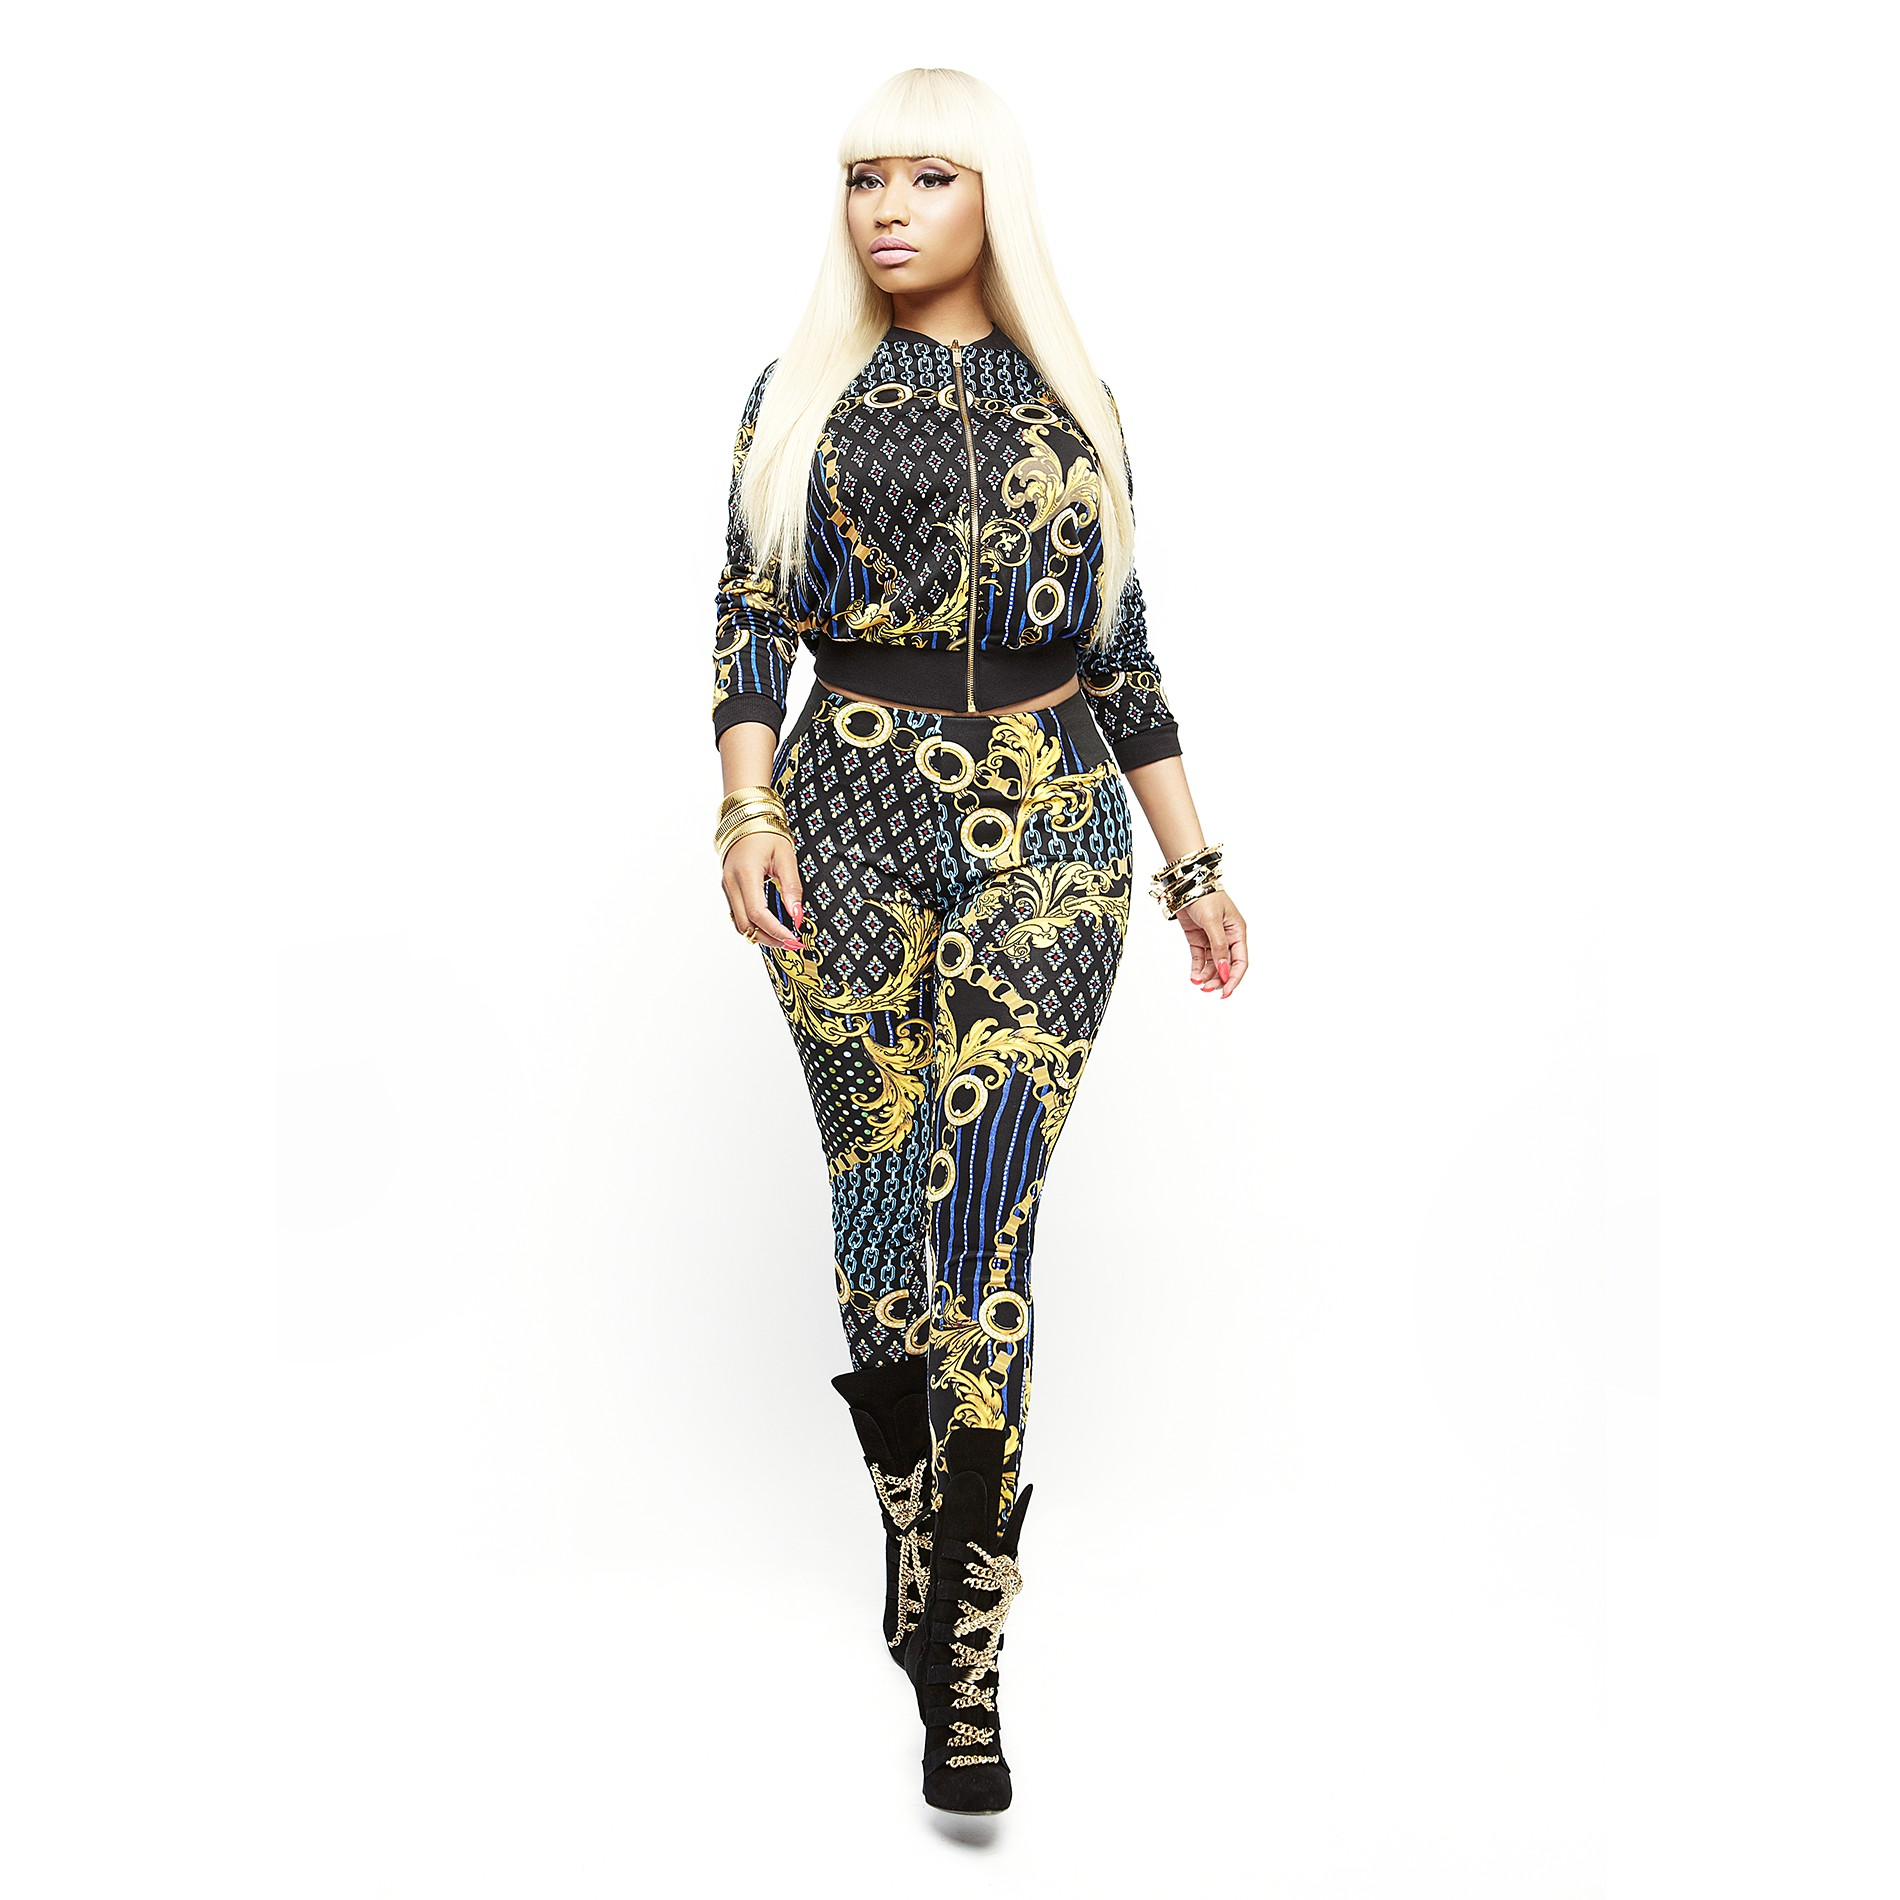 Nicki Minaj Women's Leggings - Chain Print - Clothing - Women's - Shorts & Capris